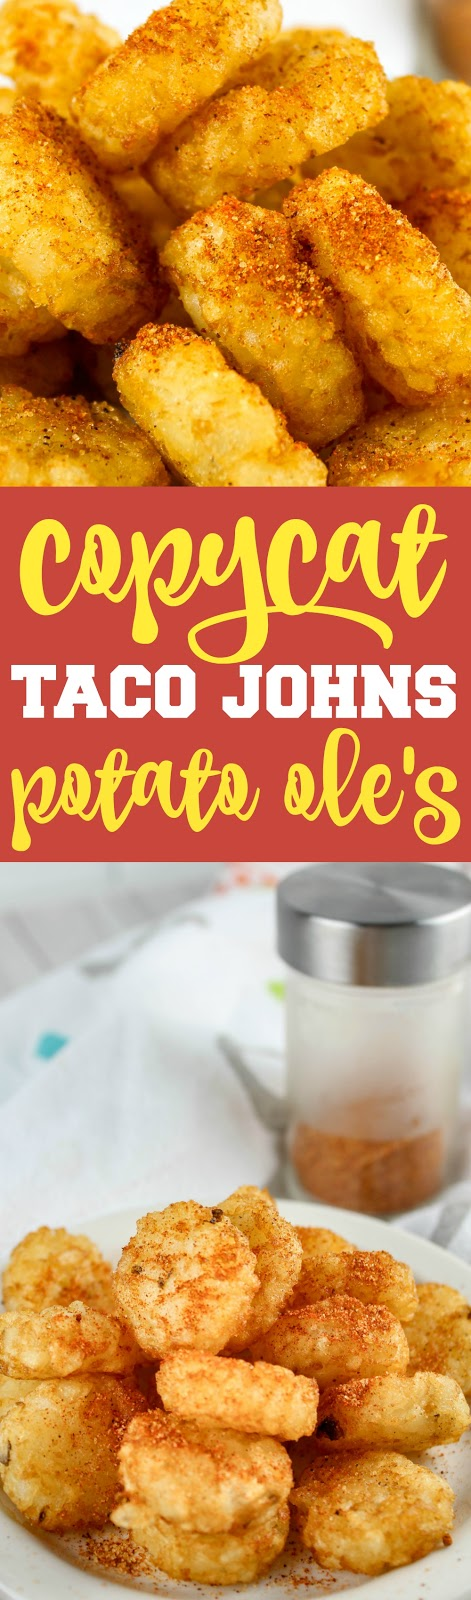 Taco John's Potato Oles are my one of my favorite Iowa treats. I ate them ALL THE TIME in college! They make tater tots salty, sweet, spicy and delicious! #tacojohns #copycatrecipe